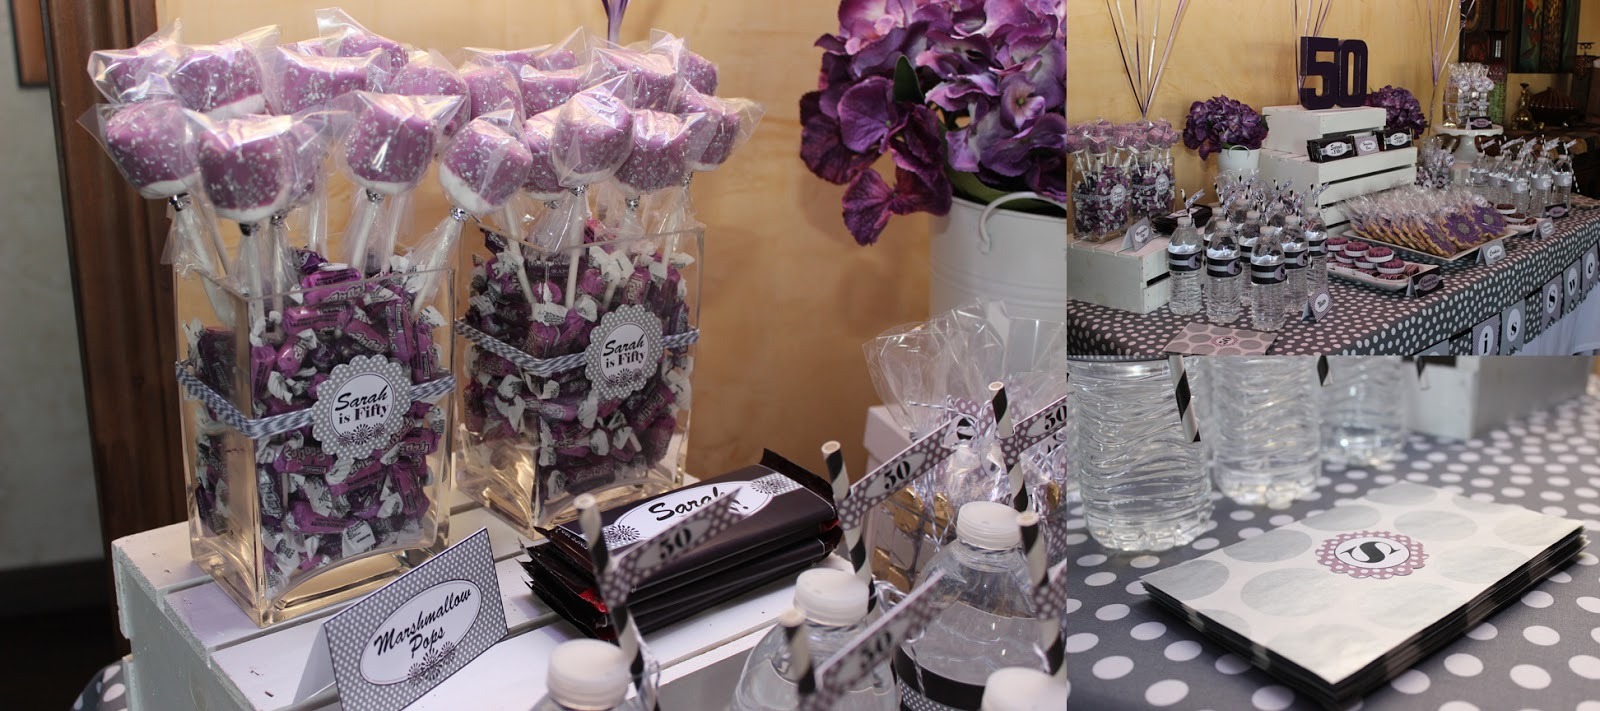 50th Birthday Decorations Purple Image Inspiration of Cake and